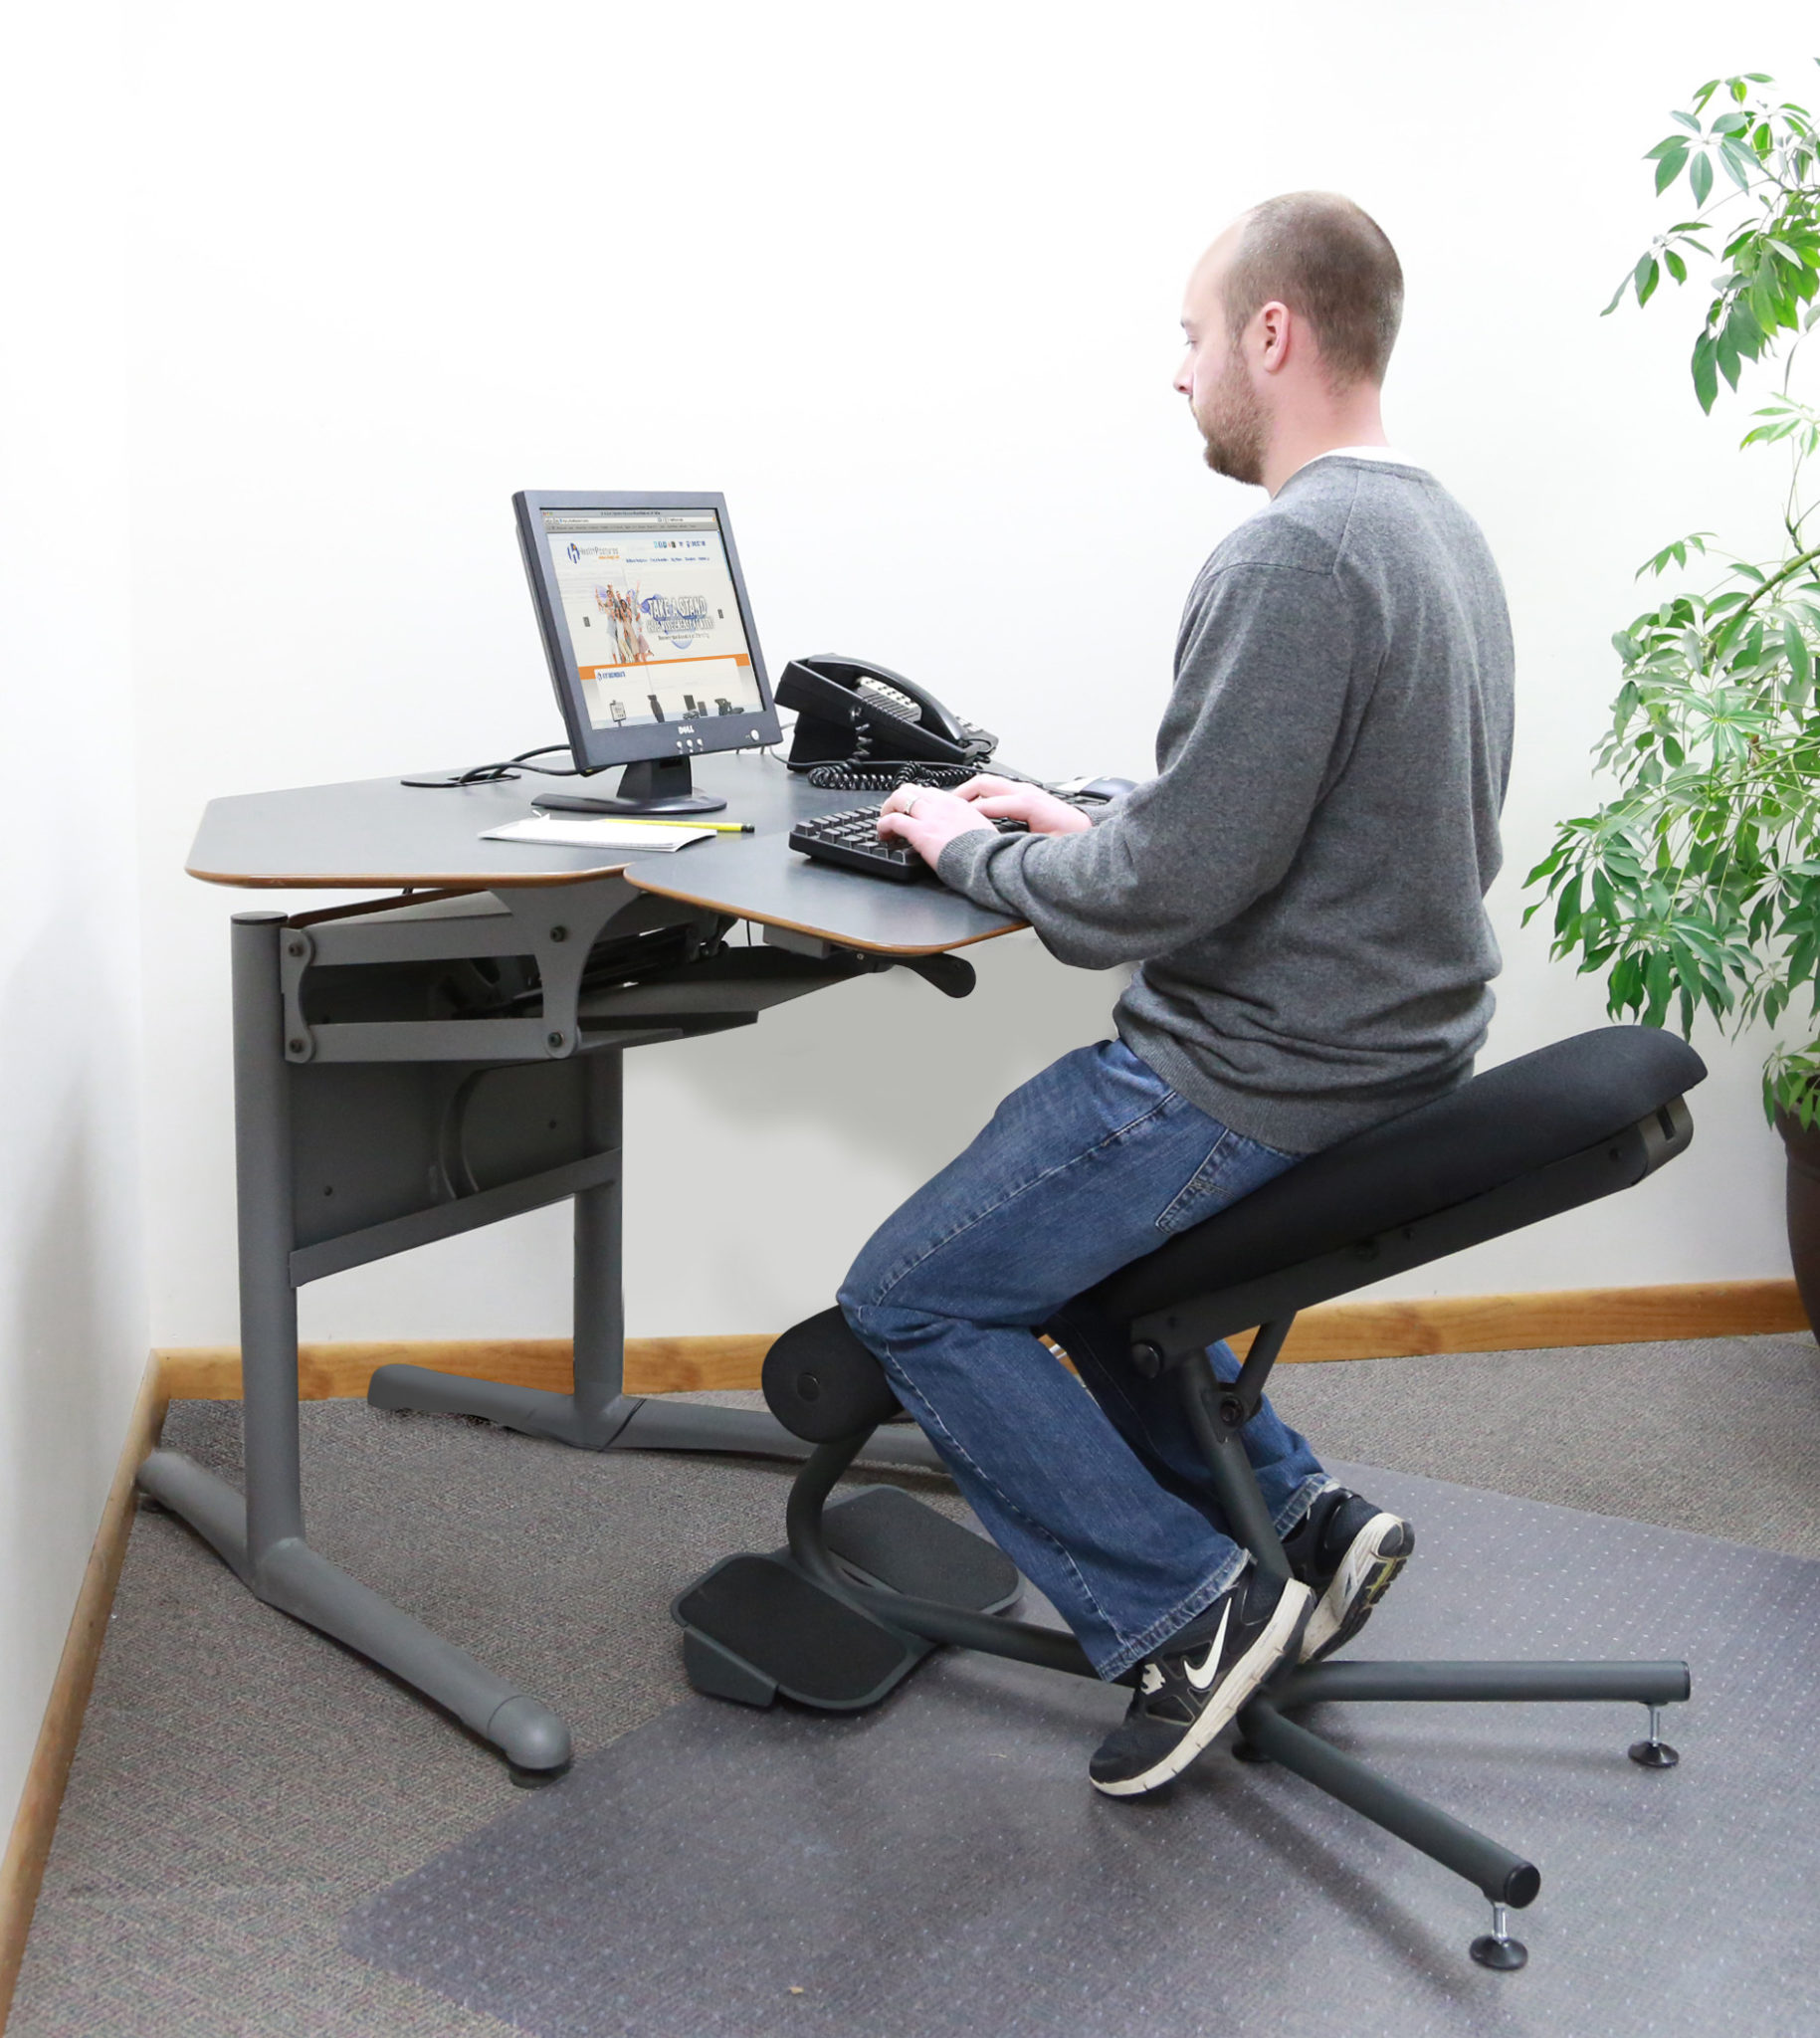 Lower Back Support For Office Chair Stance Angle Chair Ergonomic Standing Chair Healthpostures